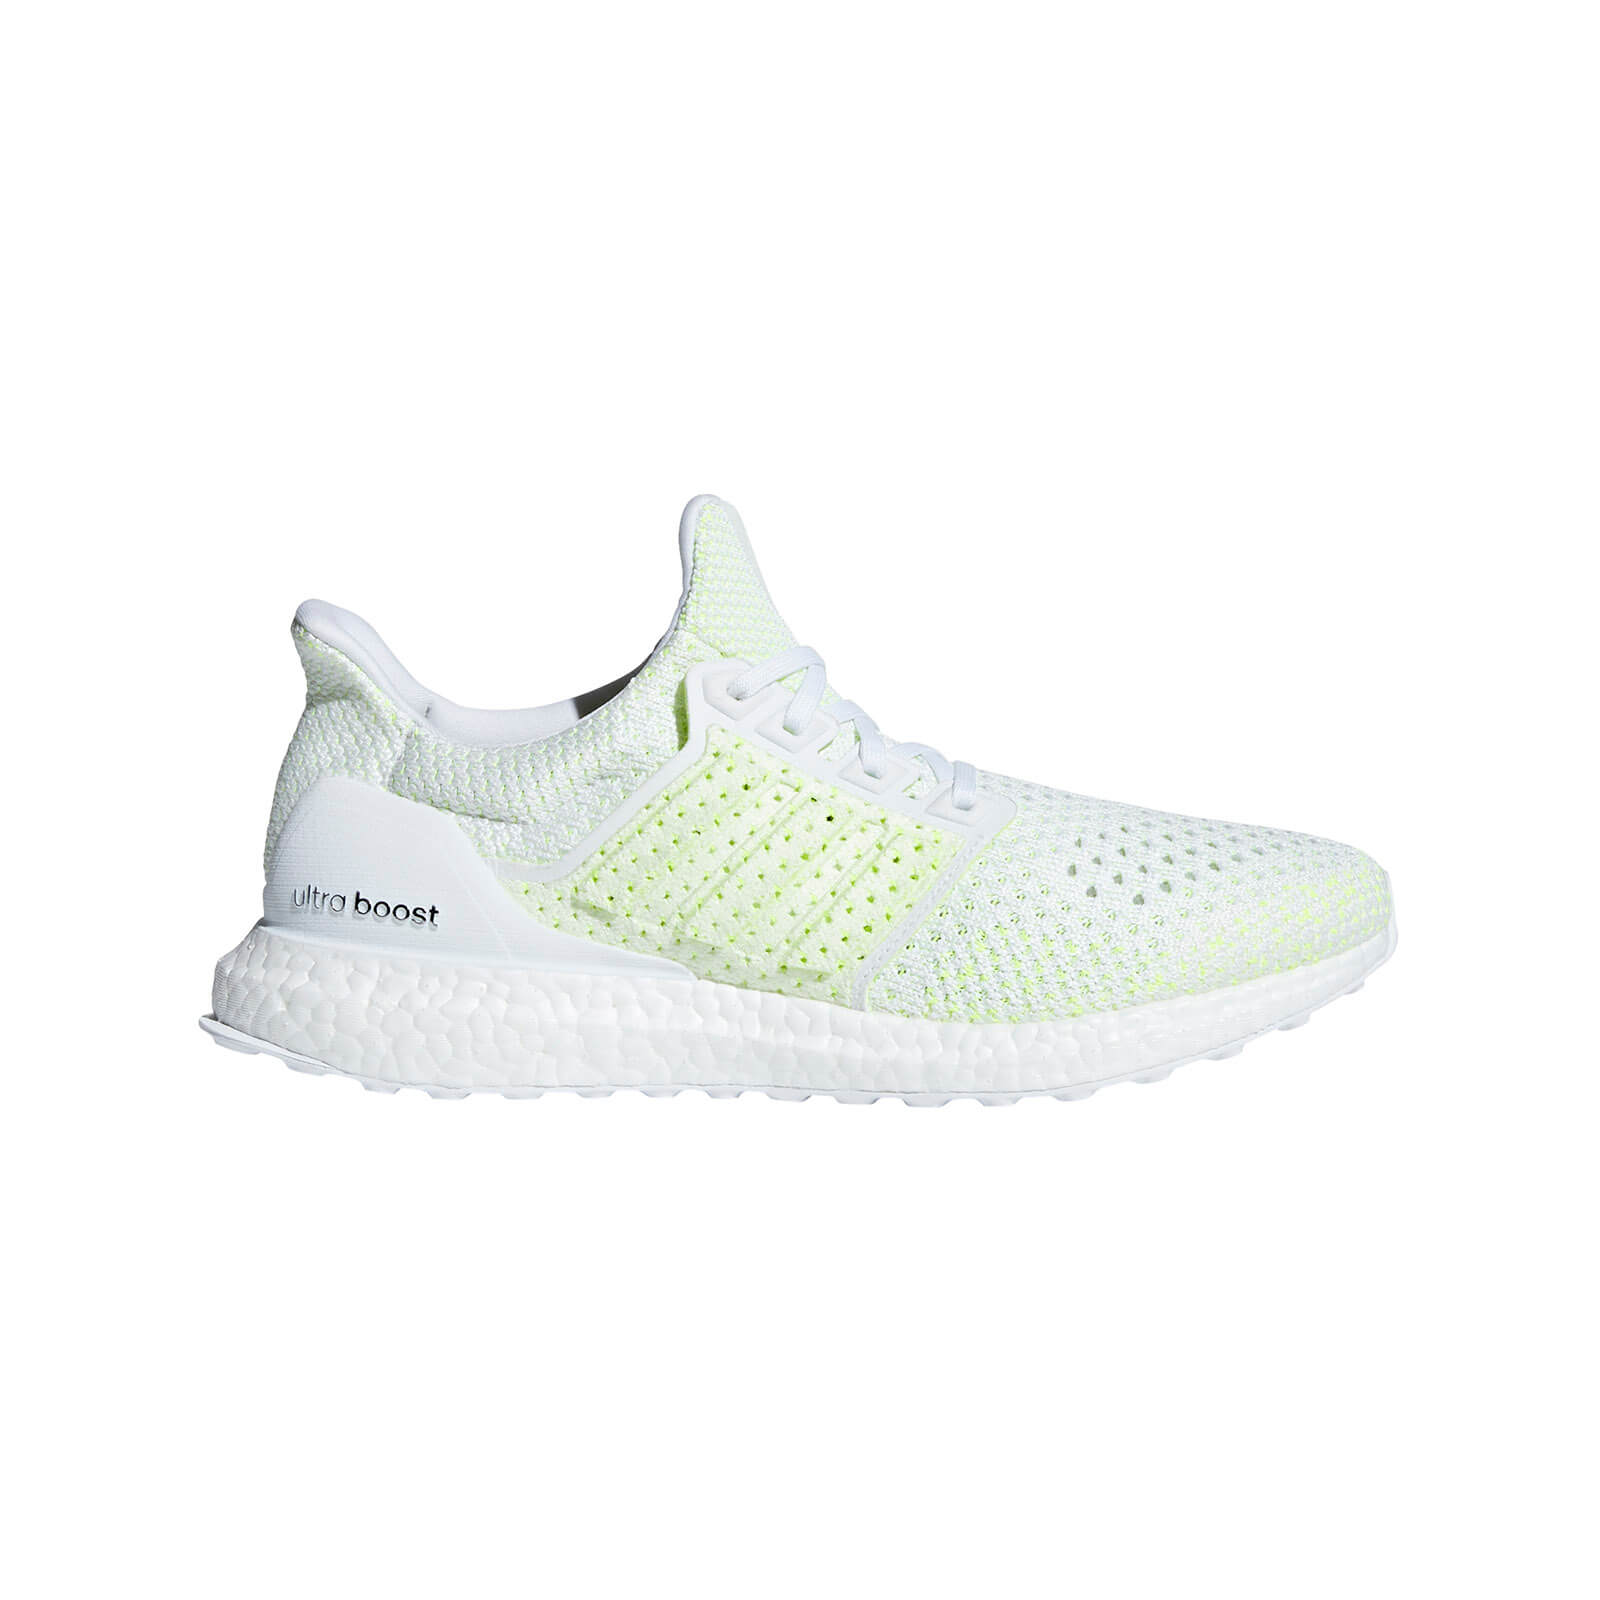 32f0e87b1bf5e adidas Men s Ultraboost Clima Running Shoes - White Green ...